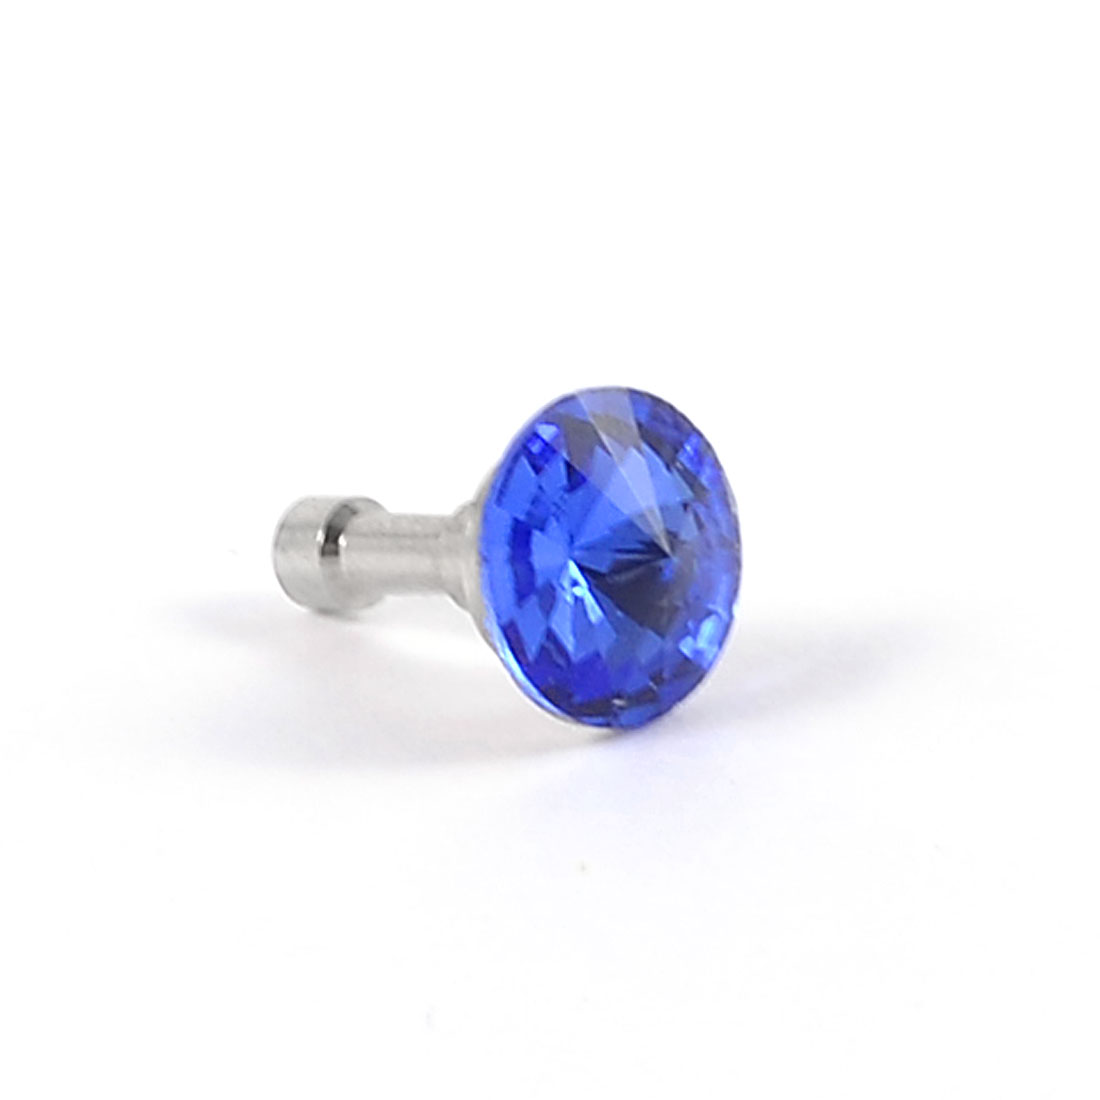 Glitter Blue Faceted Crystal Detail 3.5mm Ear Cap Dust Plug for Cell Phone